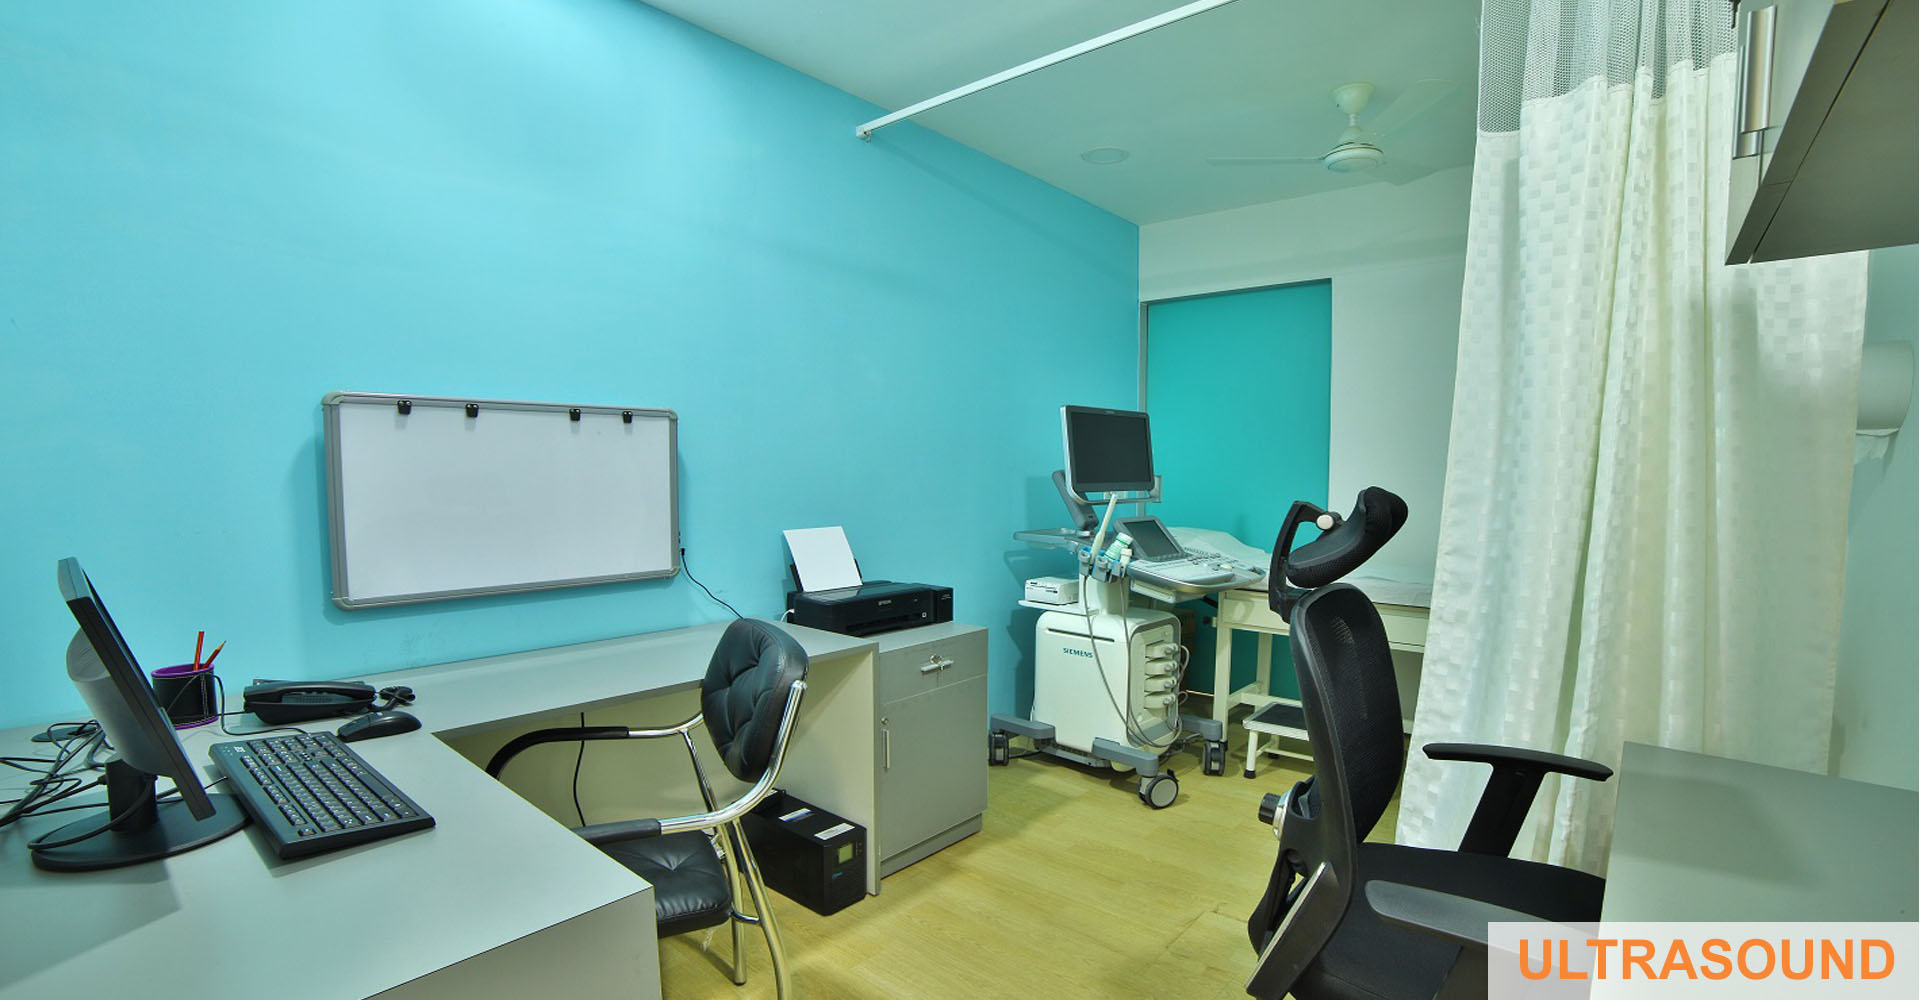 Best Multispecialty Clinic in Gurgaon